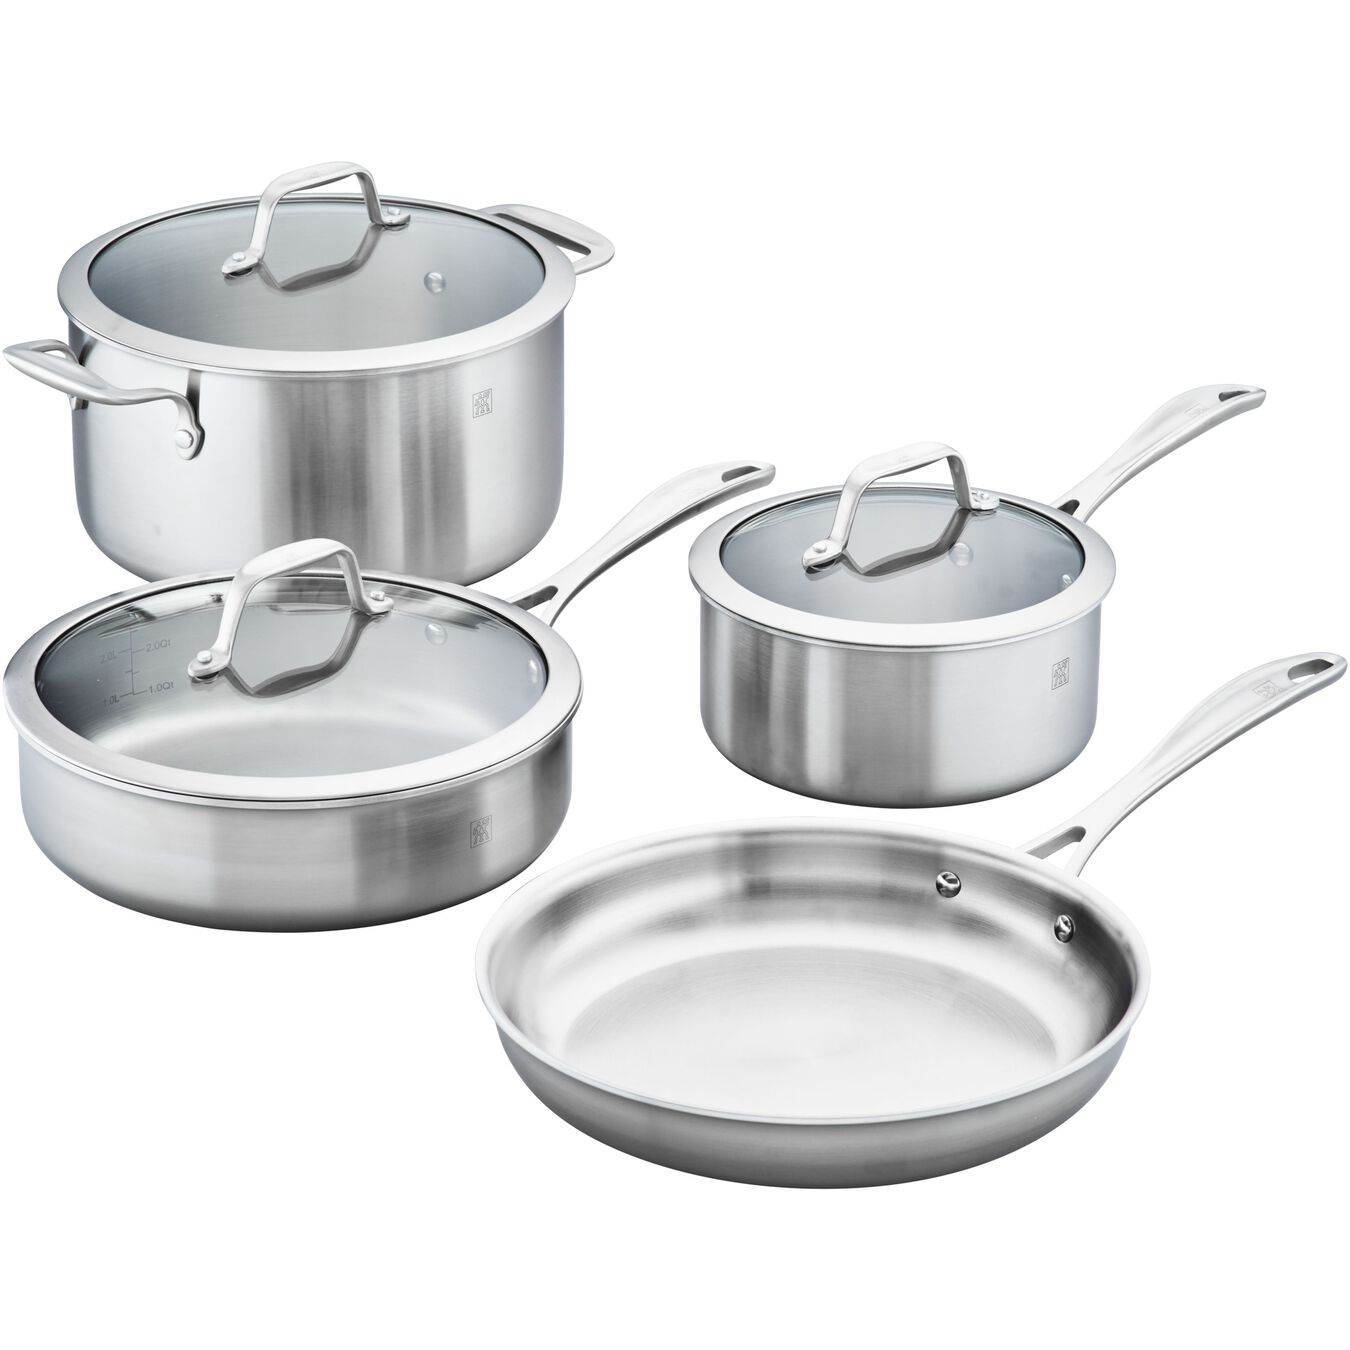 7-pc, 18/10 Stainless Steel, Pots and pans set,,large 1